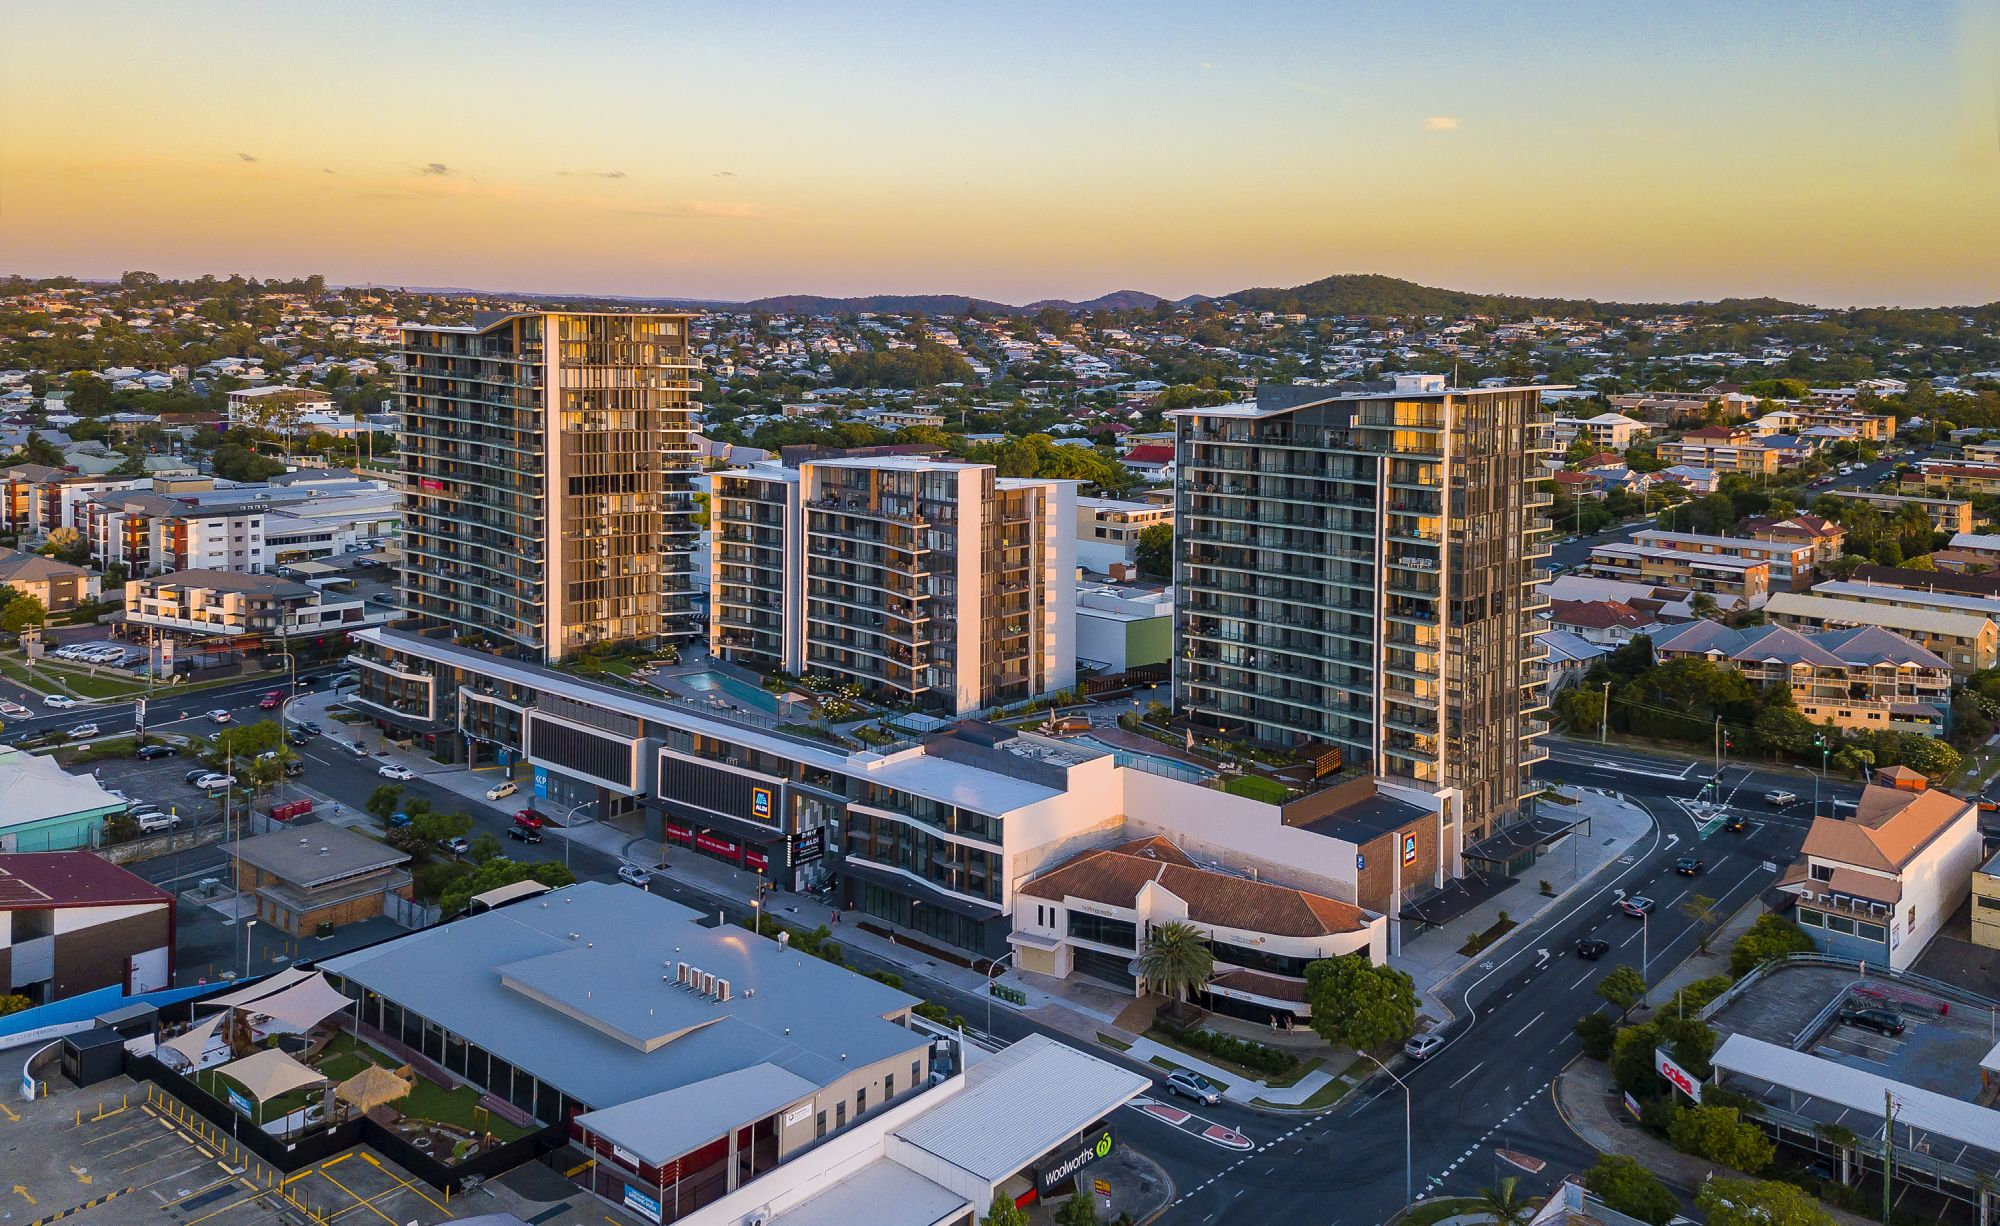 Coorparoo Square, Queensland, Australia. Joint venture project Frasers Property Australia and Honeycombes Property Group. Drone.